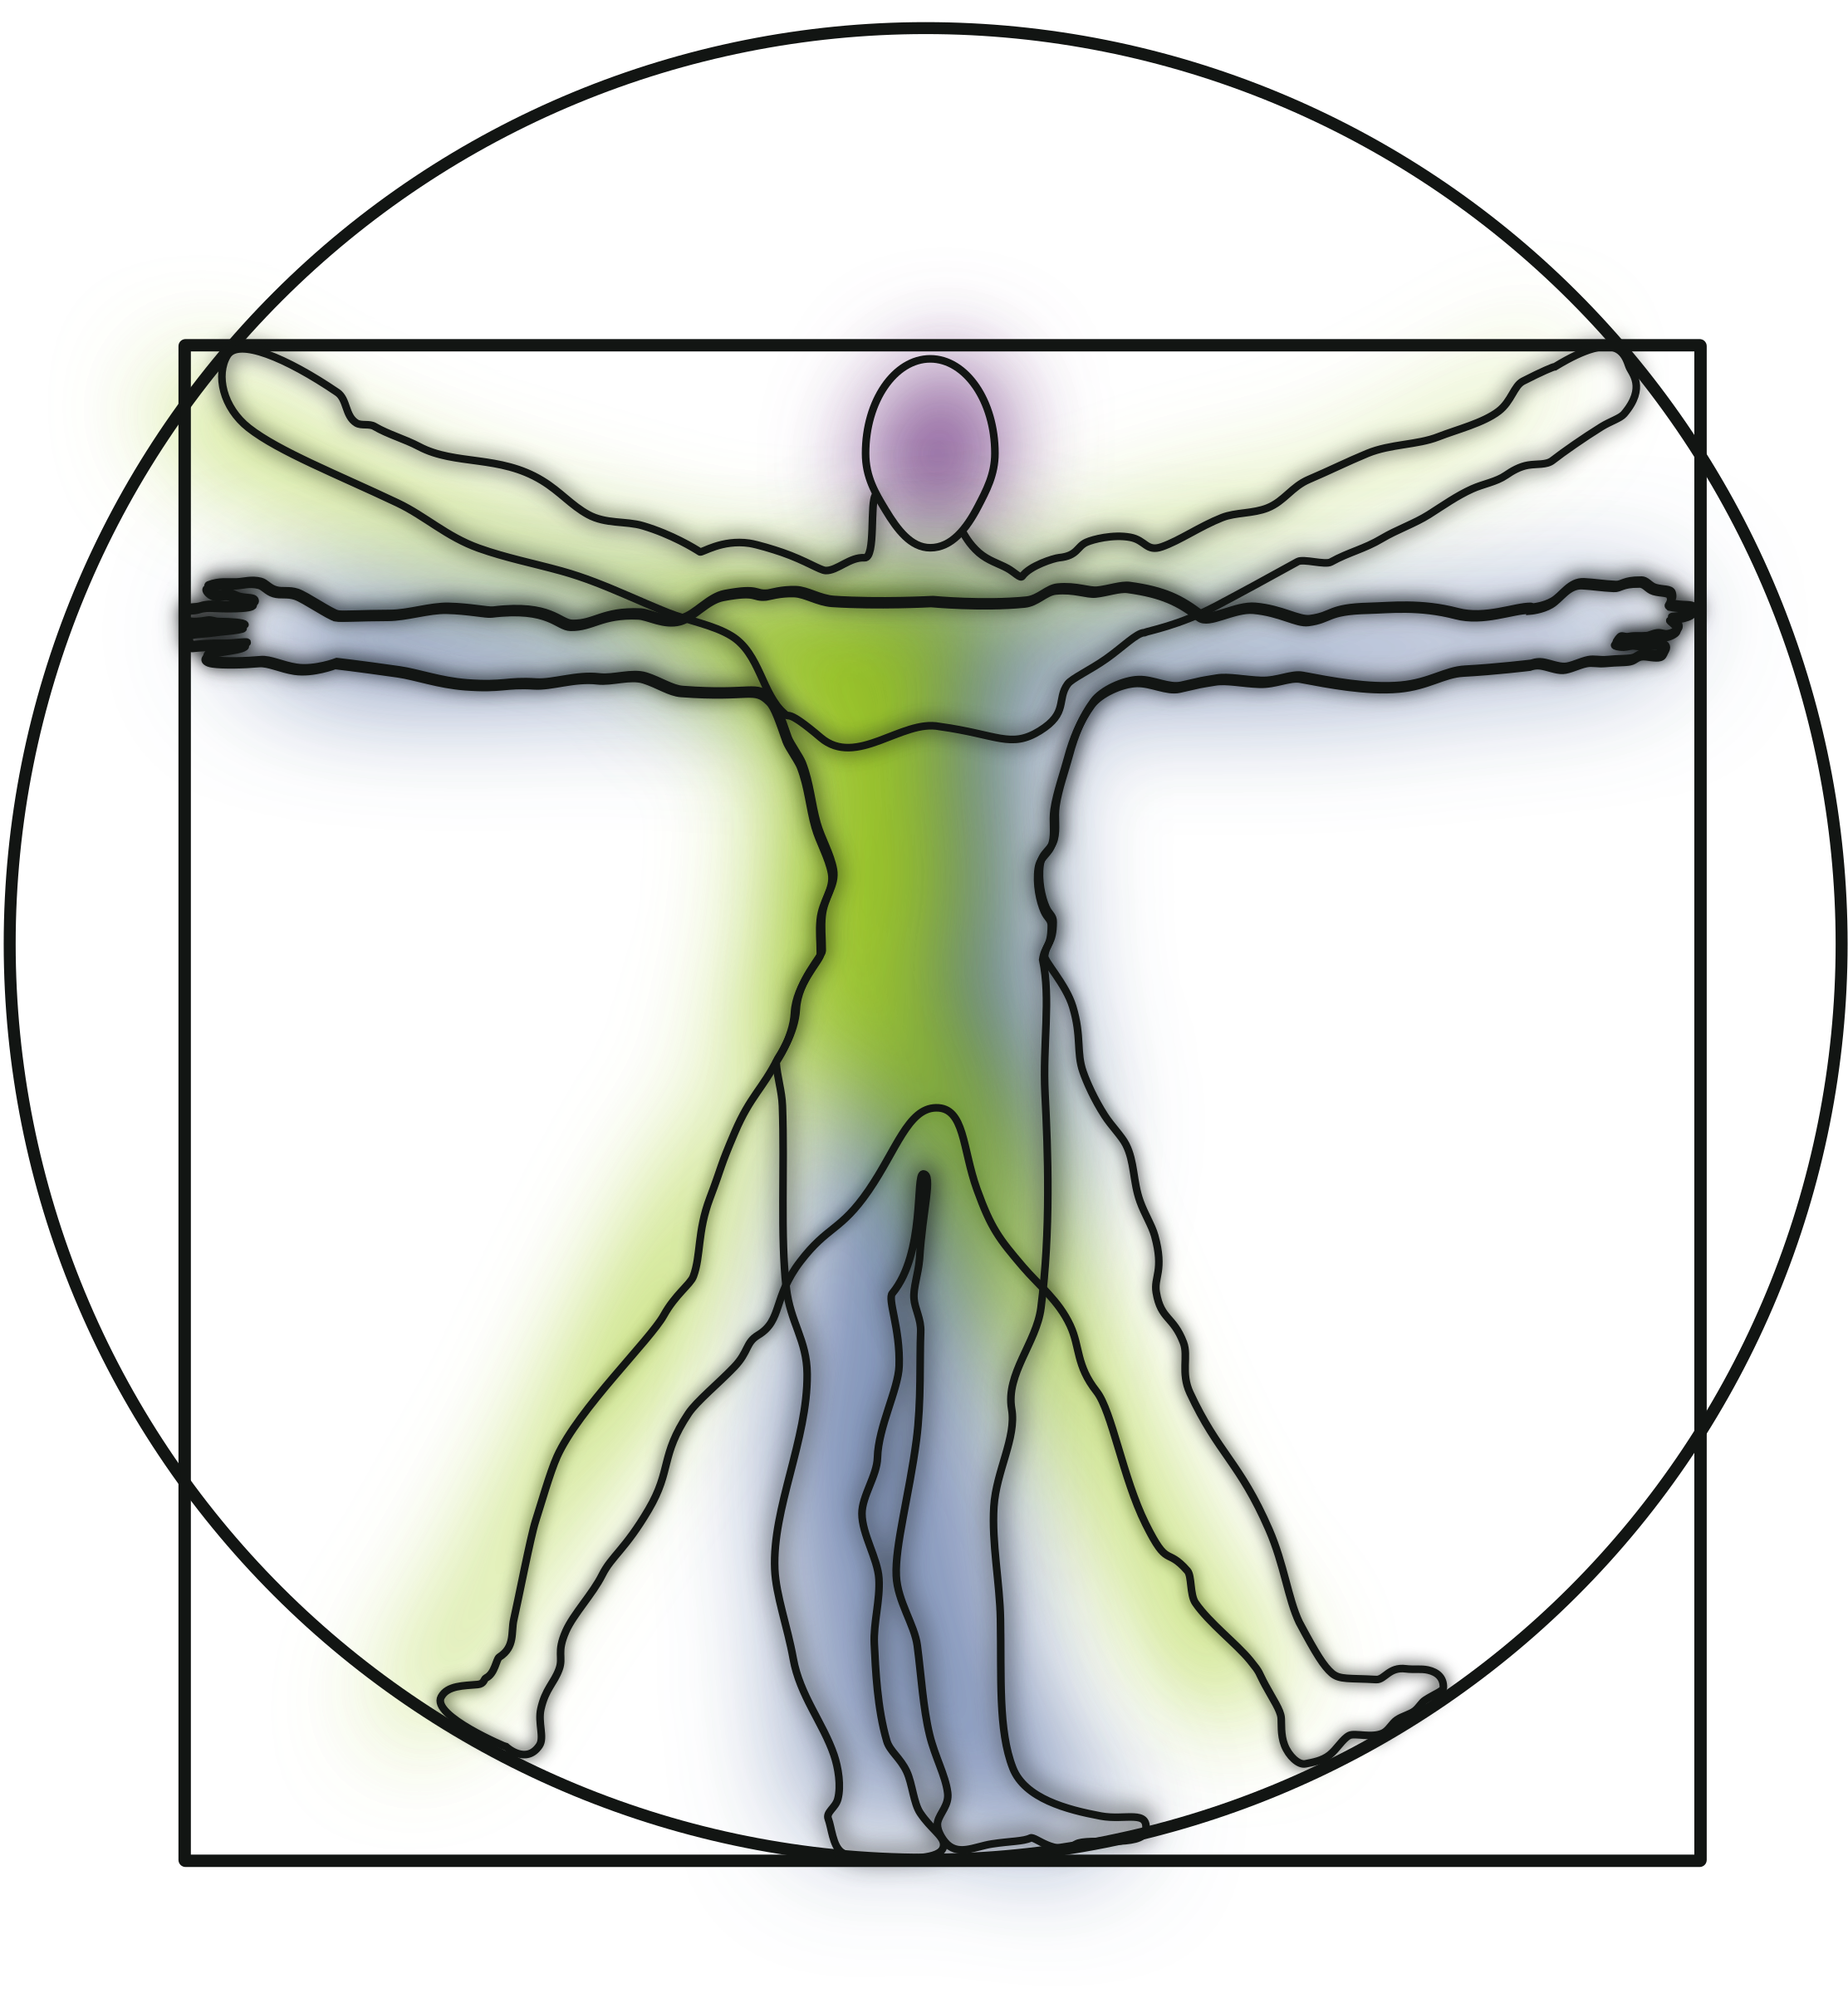 Vitruvian Man by harmonic